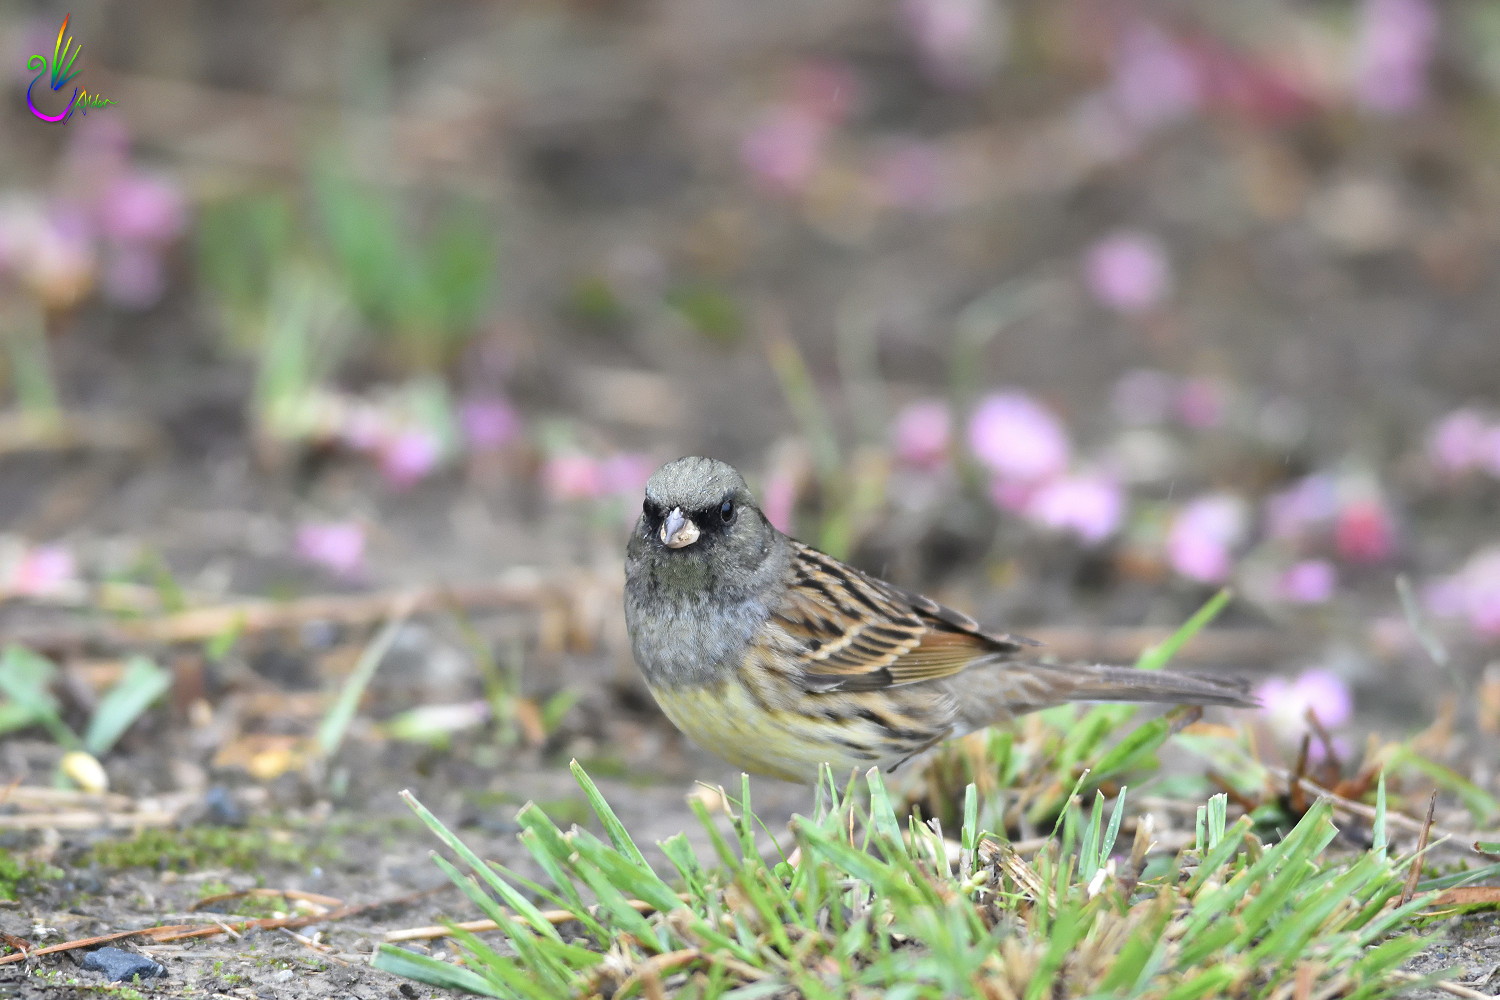 Black-faced_Bunting_7563